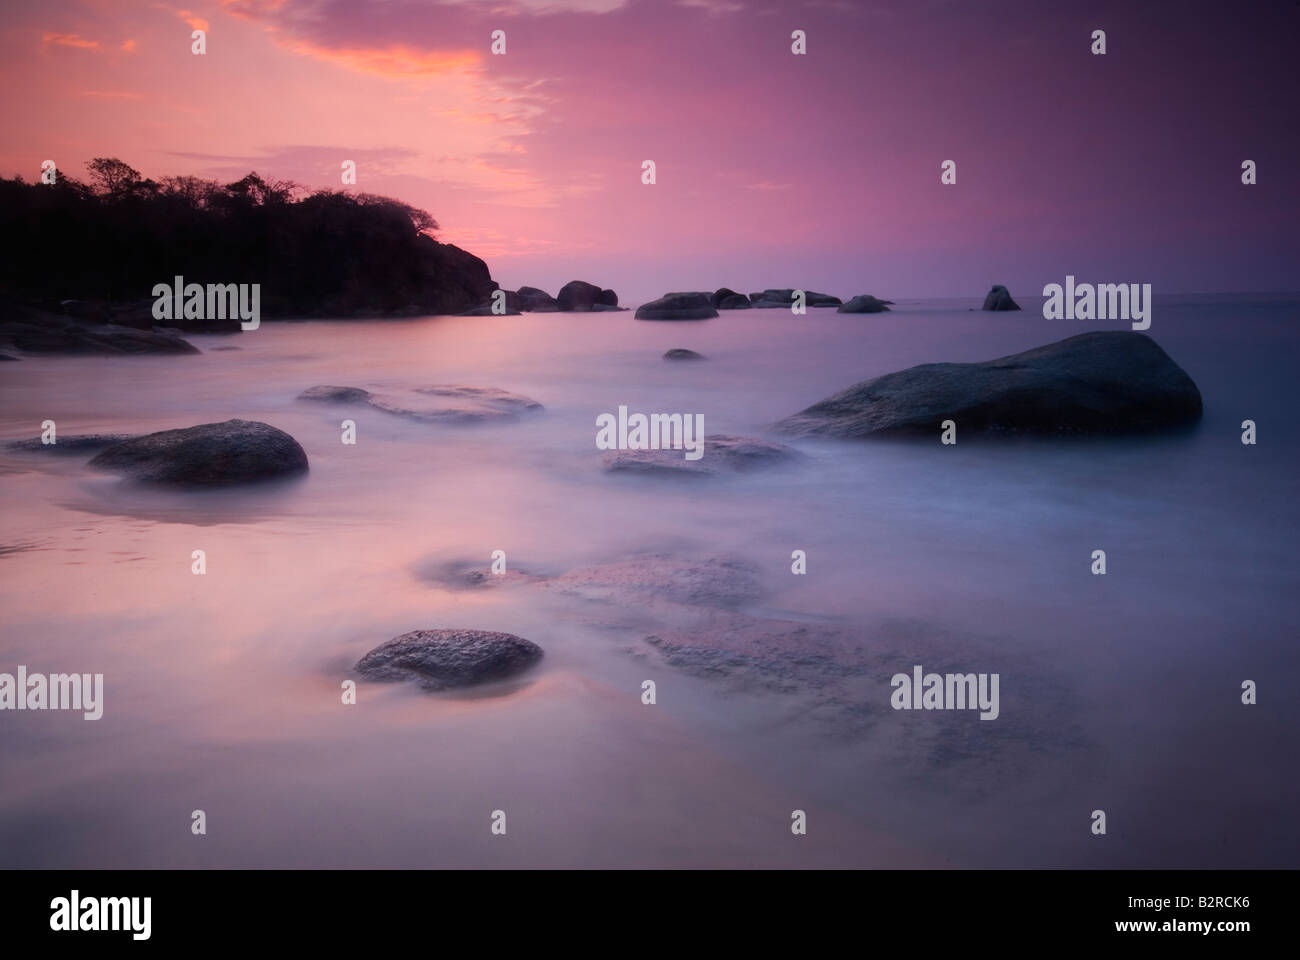 Sunset at Agonda Beach, South Goa, India, Subcontinent, Asia - Stock Image